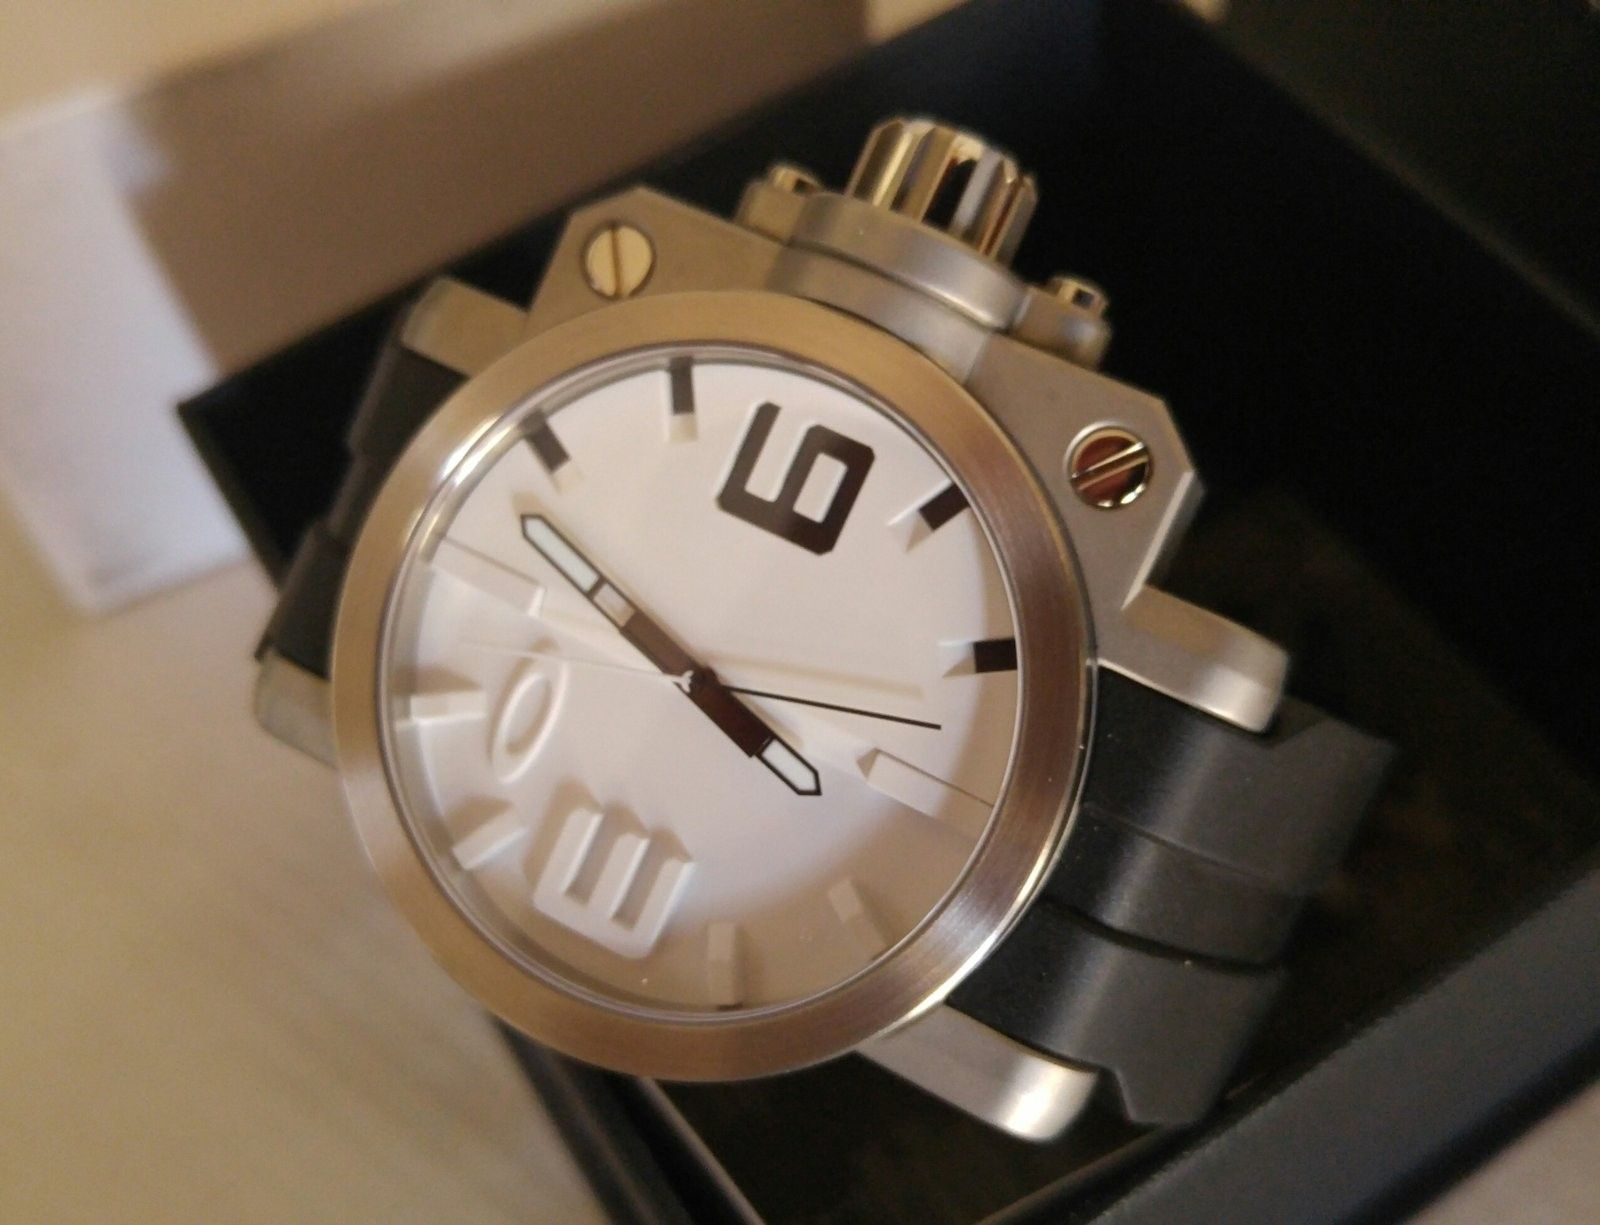 Gearbox white dial SOLD - 20160415_123239-1.jpg